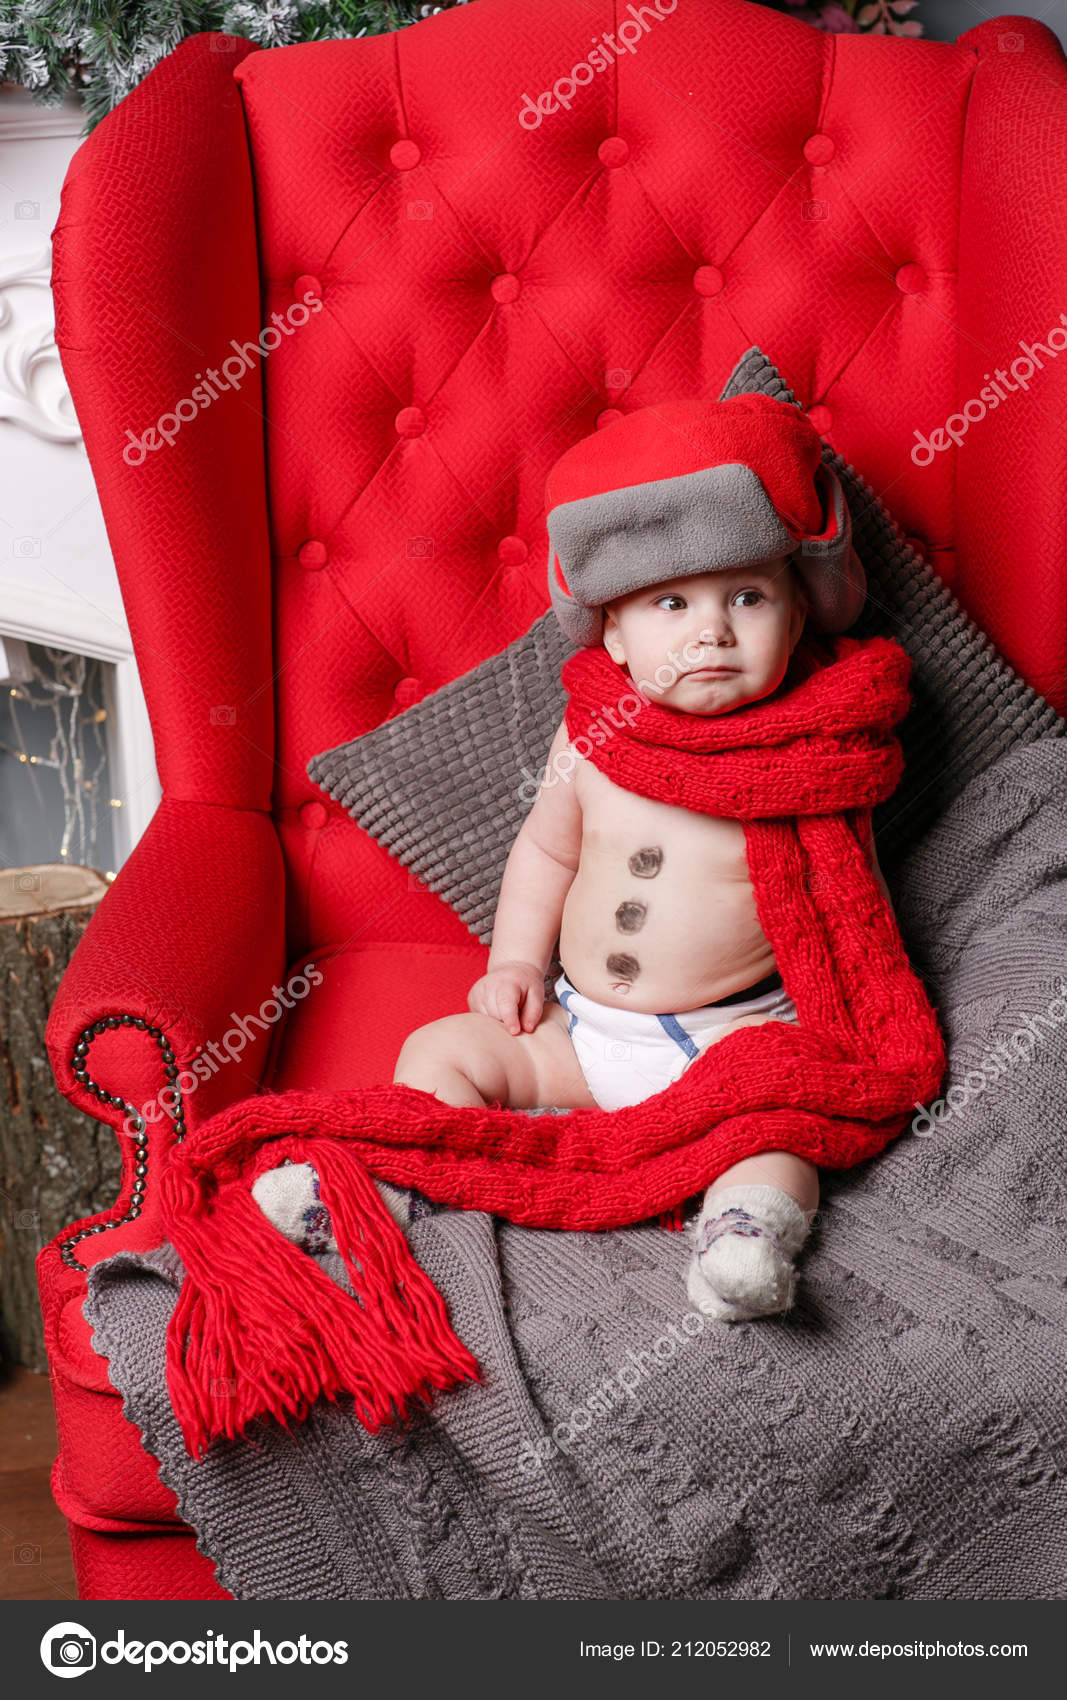 d9b4a01d8d43 Little boy sitting on a red chair in a hat and scarf